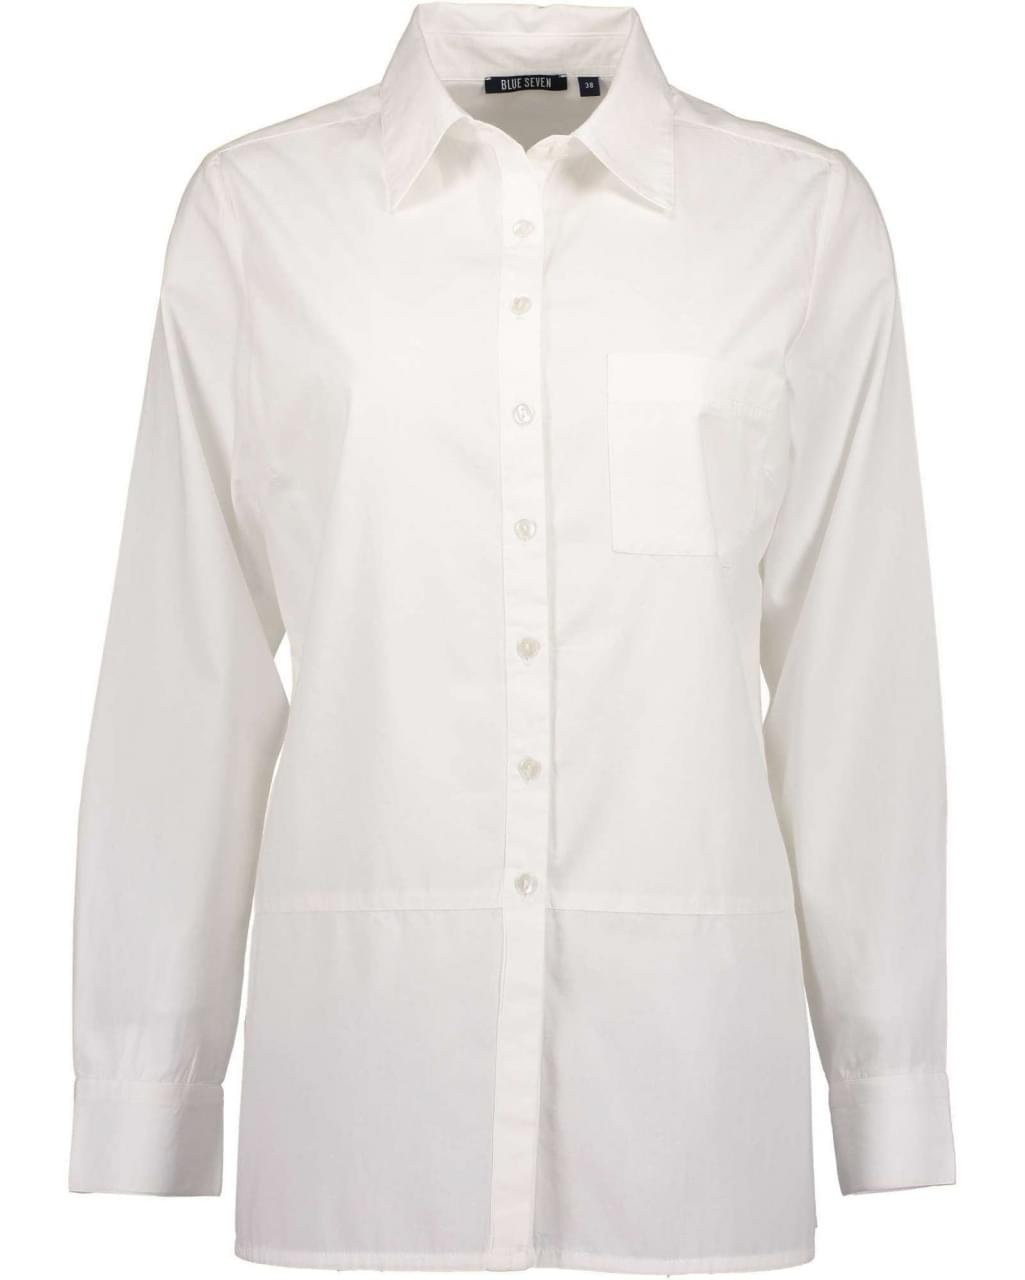 Blue Seven Lovely White Blouse Dames